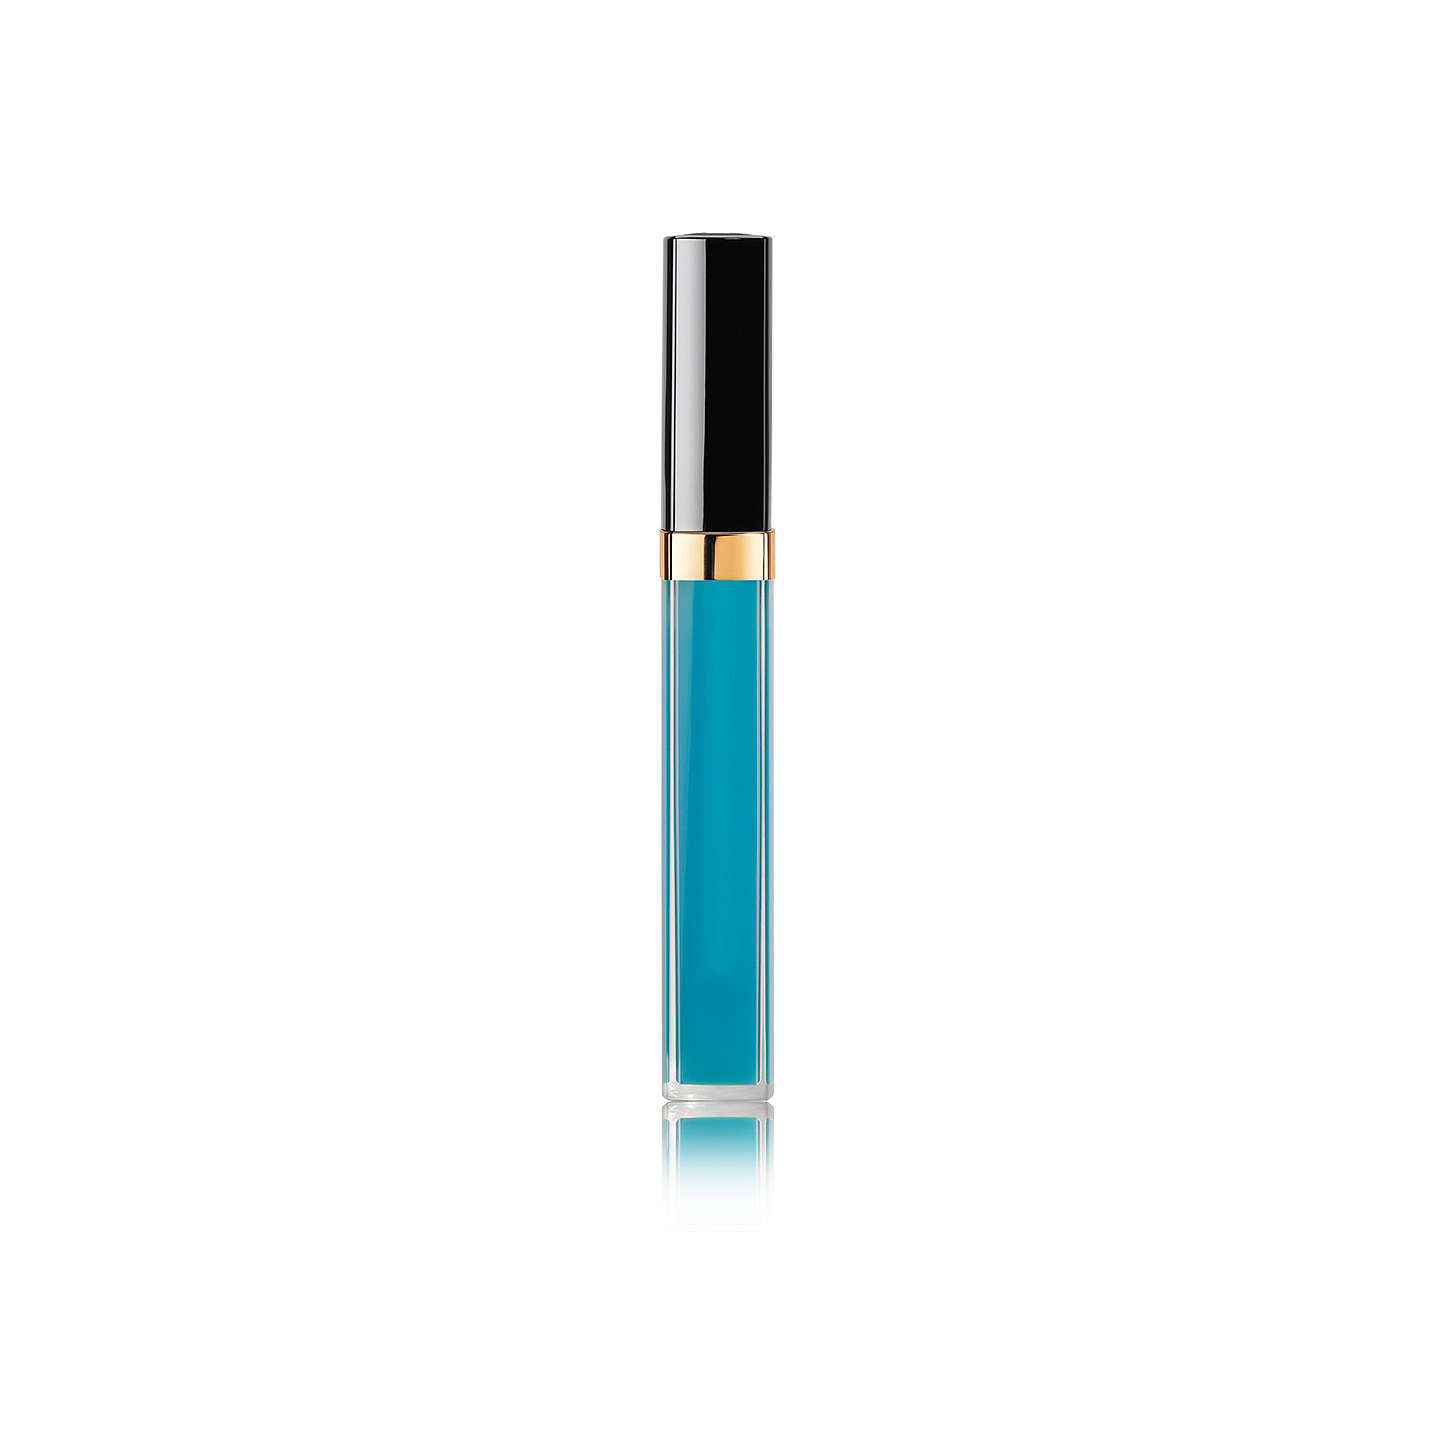 Chanelrouge Coco Gloss Moisturising Glossimer by Chanel